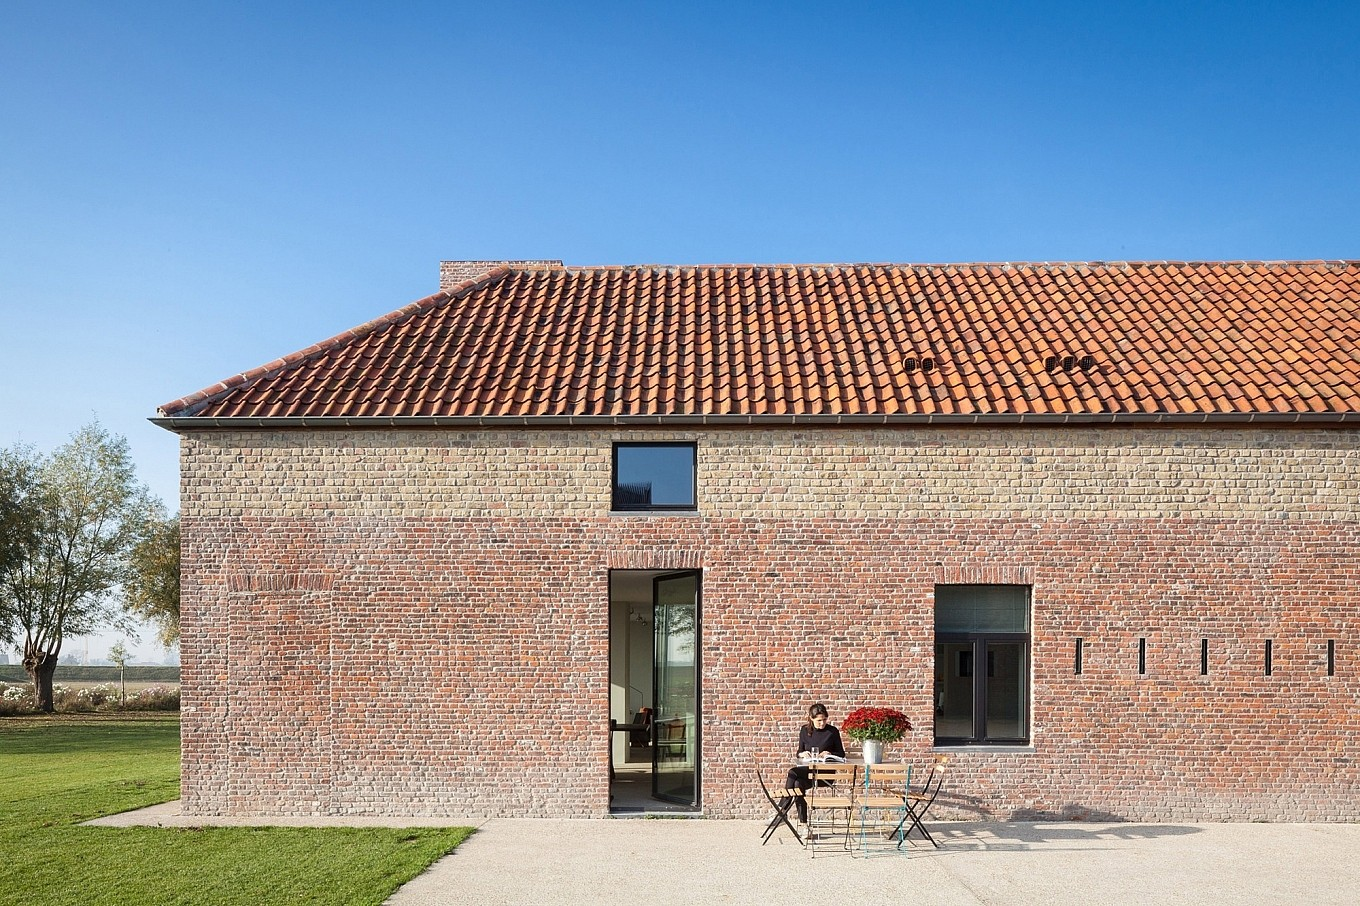 Transformation d un fort en maison en belgique par le studio govaert vanhoutte journal du design - Architecture maison en belgique ...